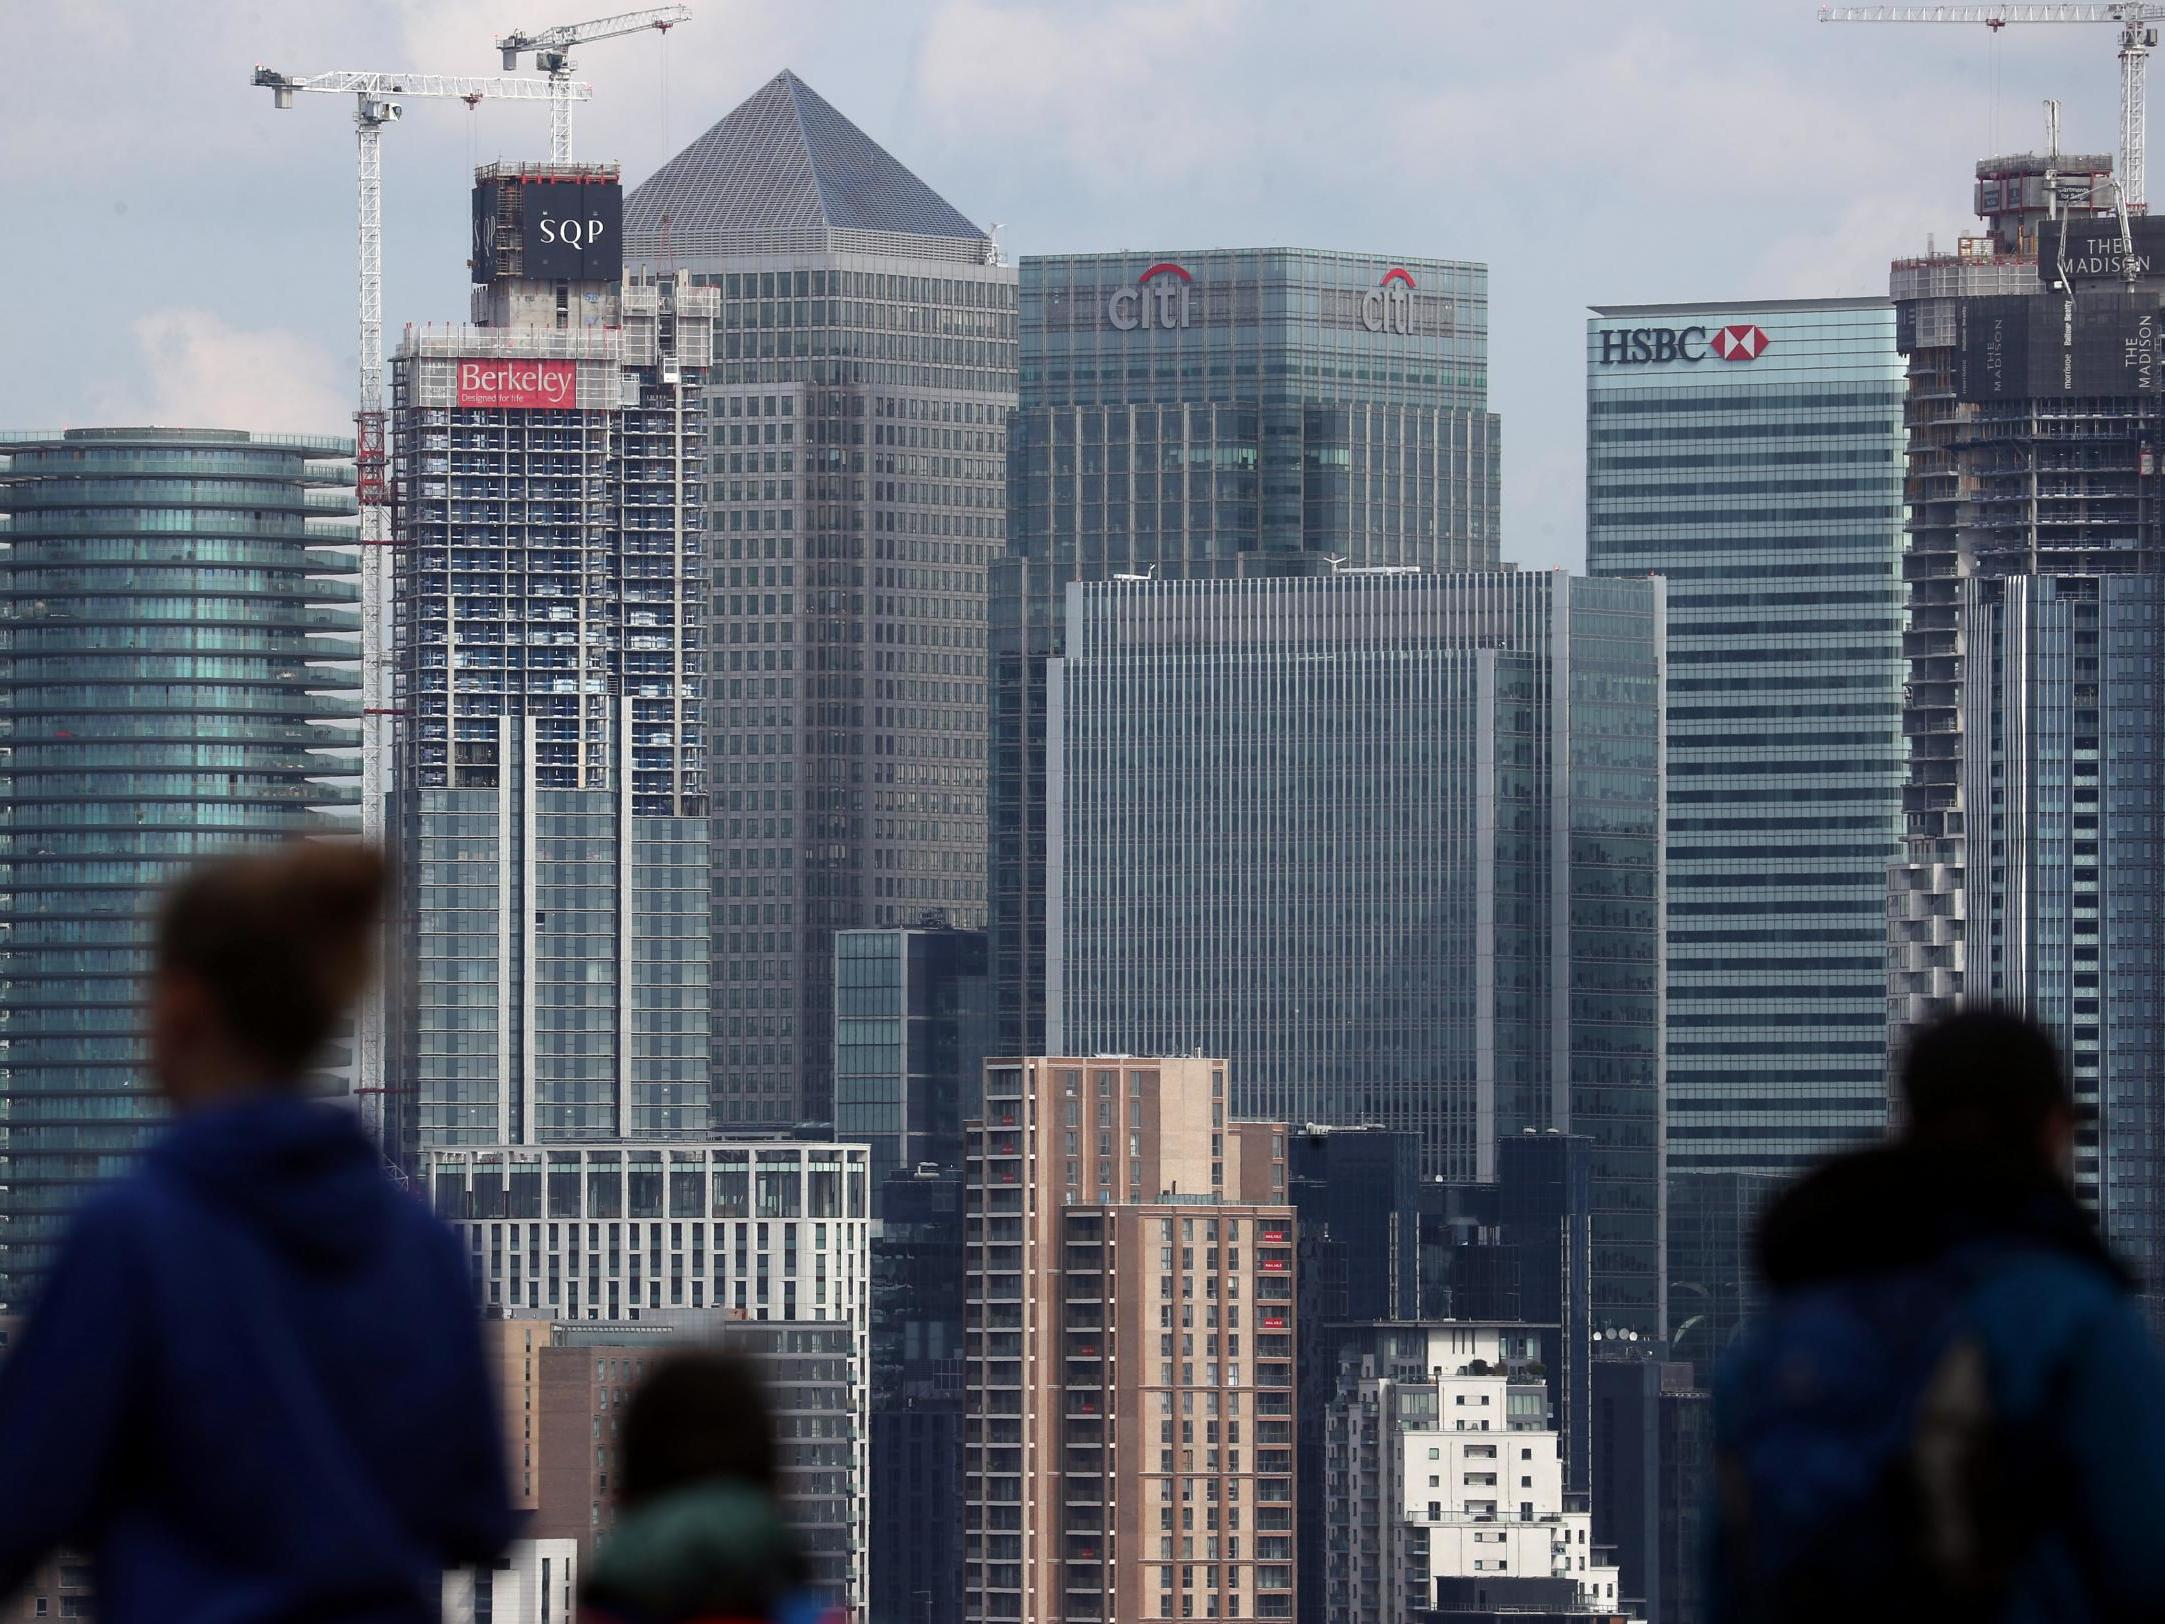 Companies will continue to spend billions on Brexit planning until no deal ruled out, says CBI